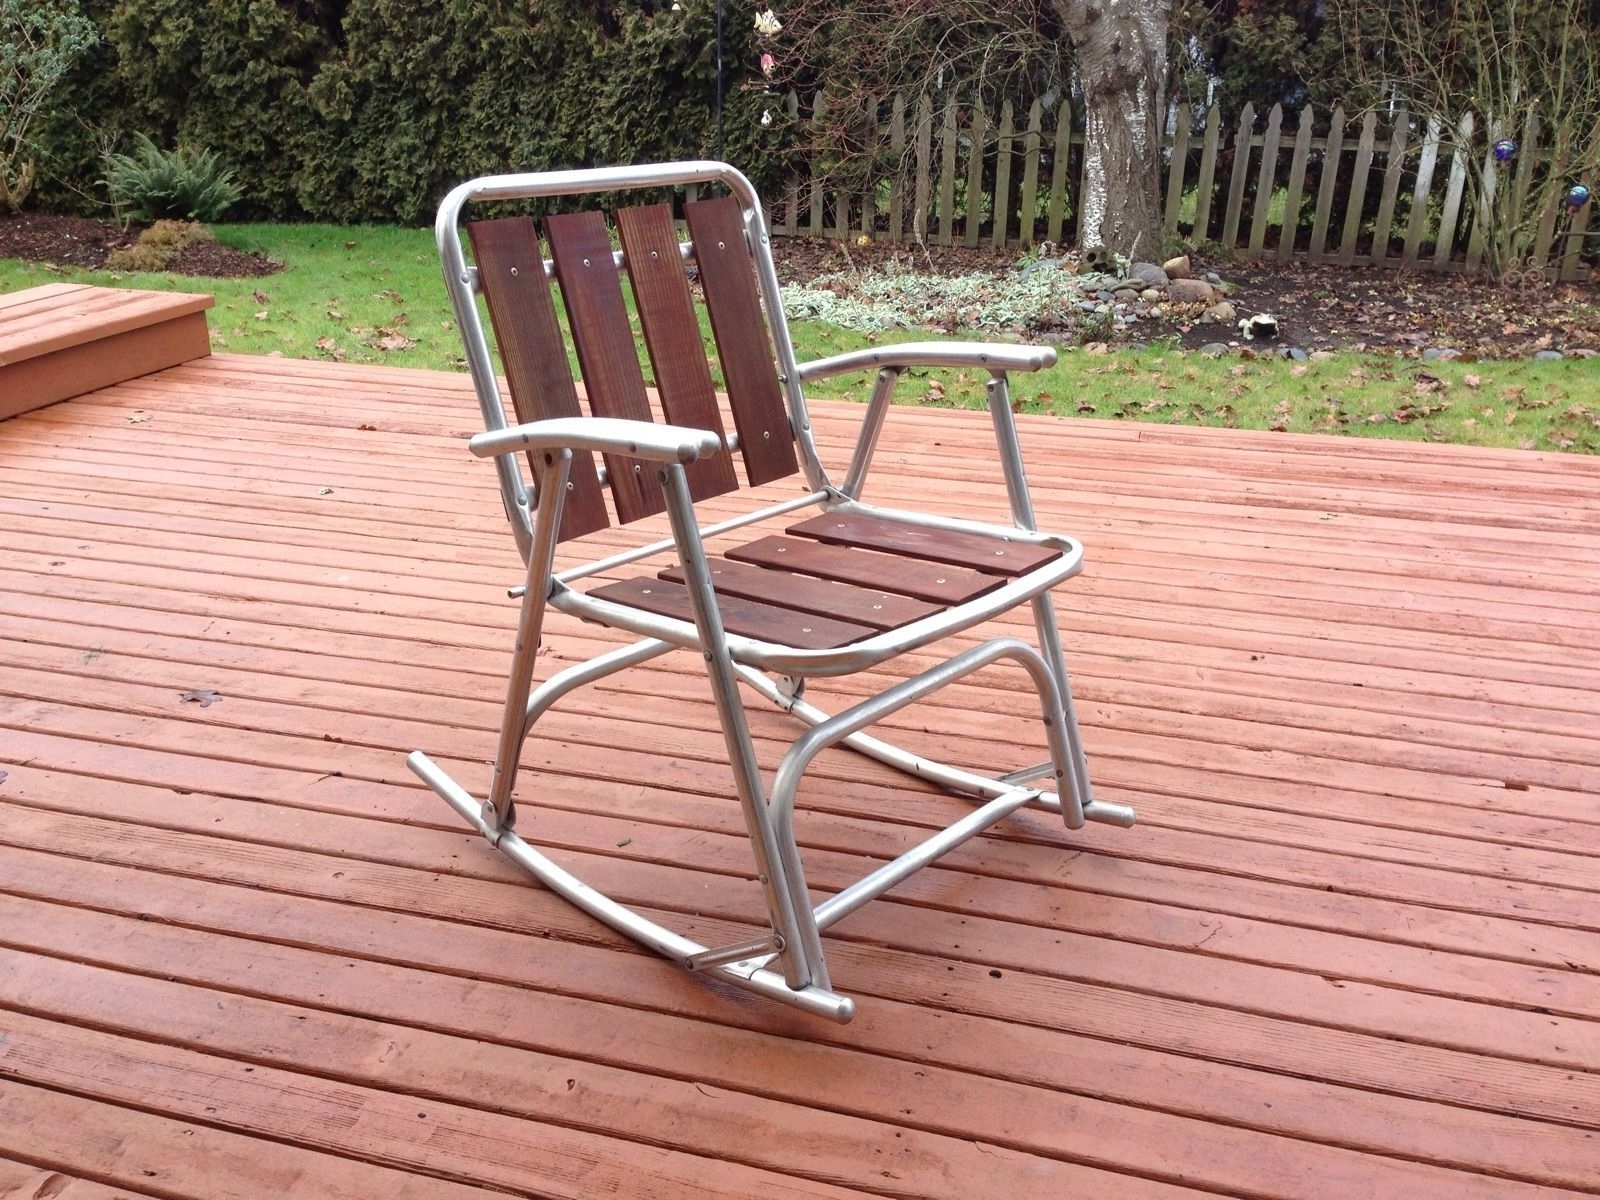 Most Recent 1 Vtg Redwood Aluminum Outdoor Patio Porch Lawn Rocking Chairs With Retro Outdoor Rocking Chairs (View 3 of 15)